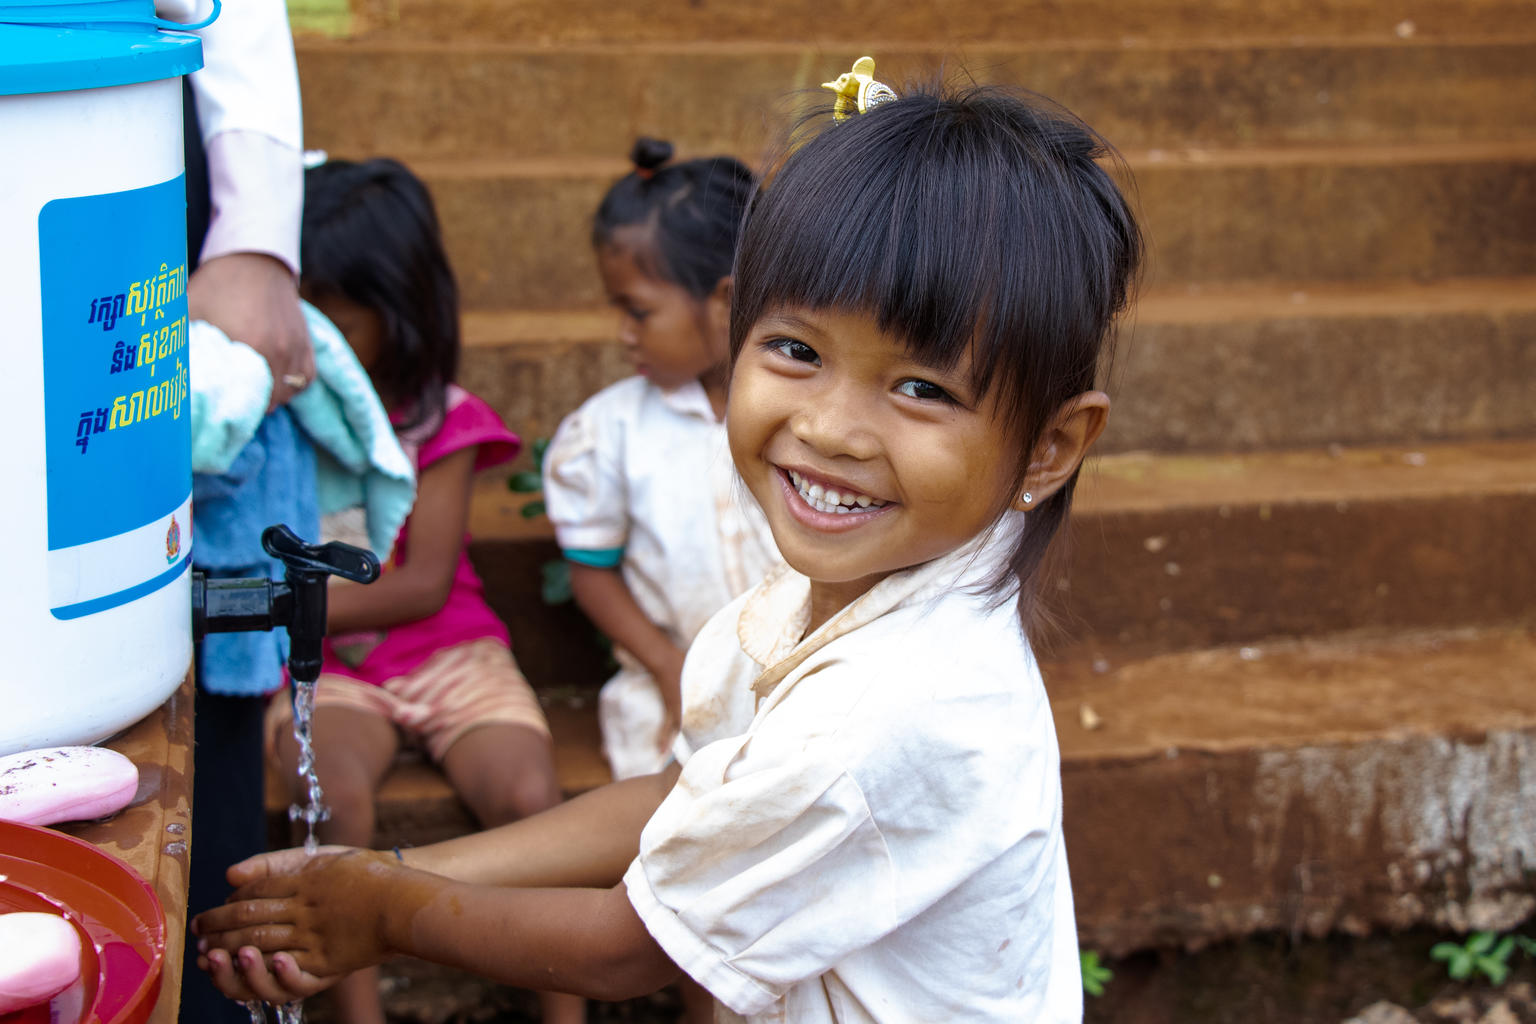 On September 7th schools re-opened across Cambodia, including Early Childhood Education.